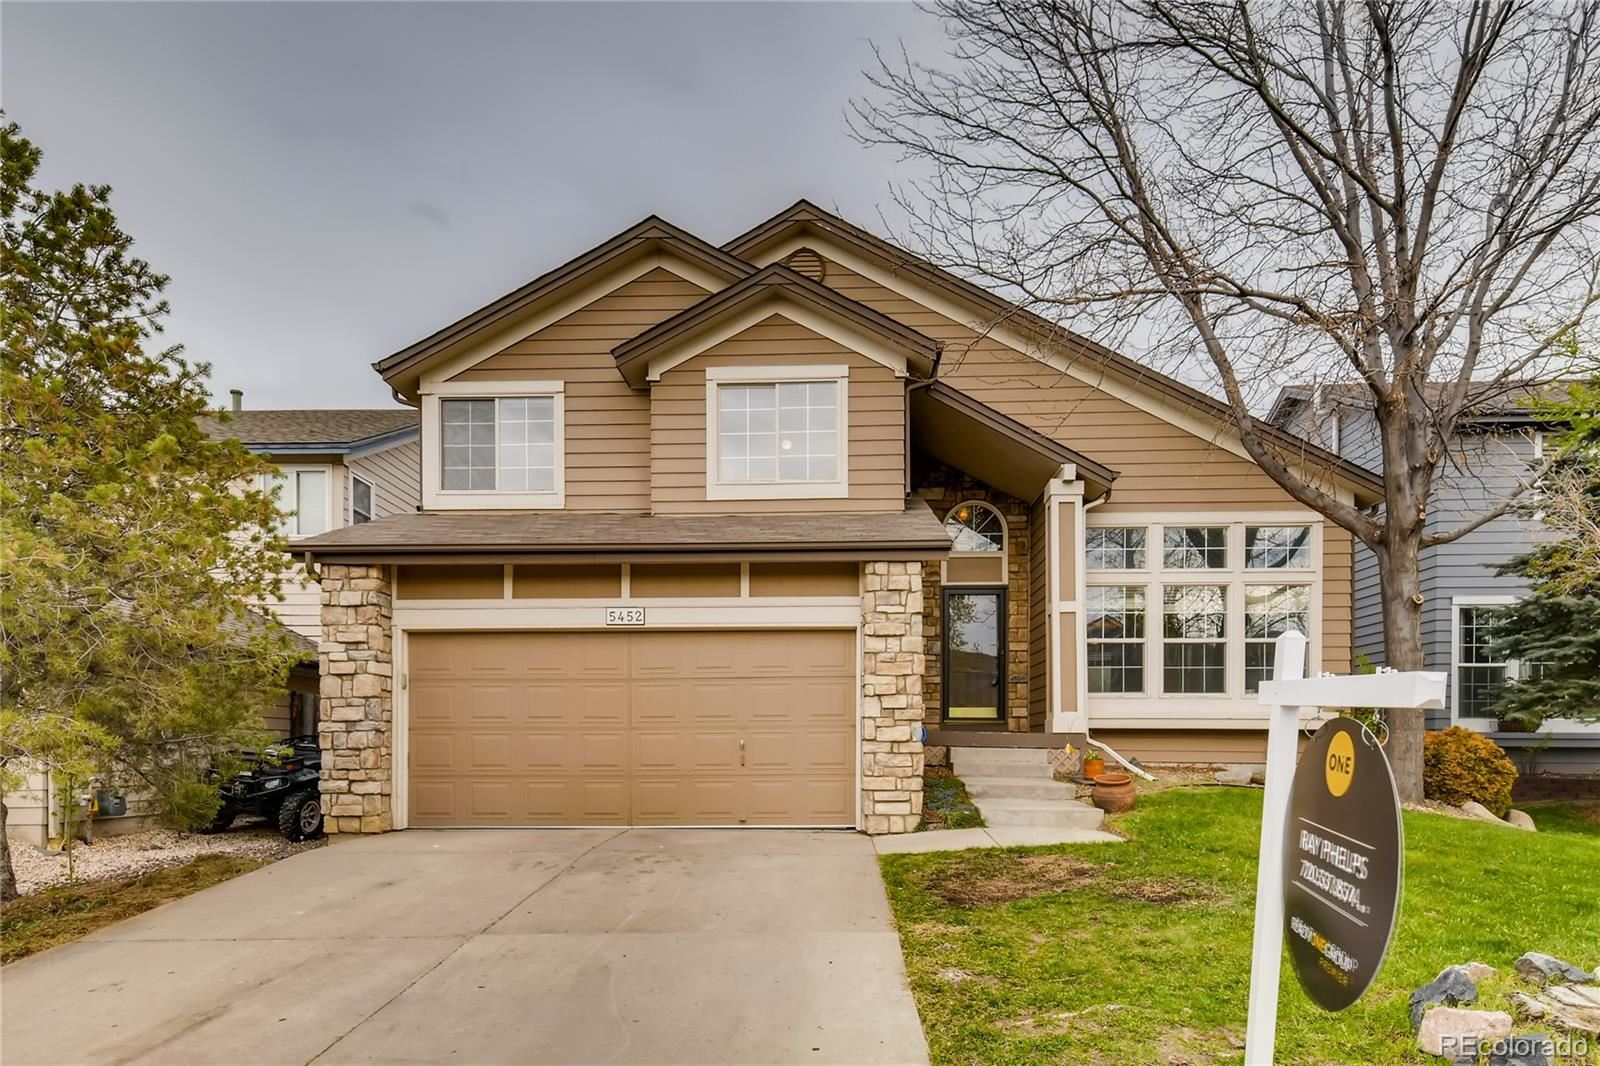 5452 S Cathay Way, Centennial, CO 80015 - #: 2359275